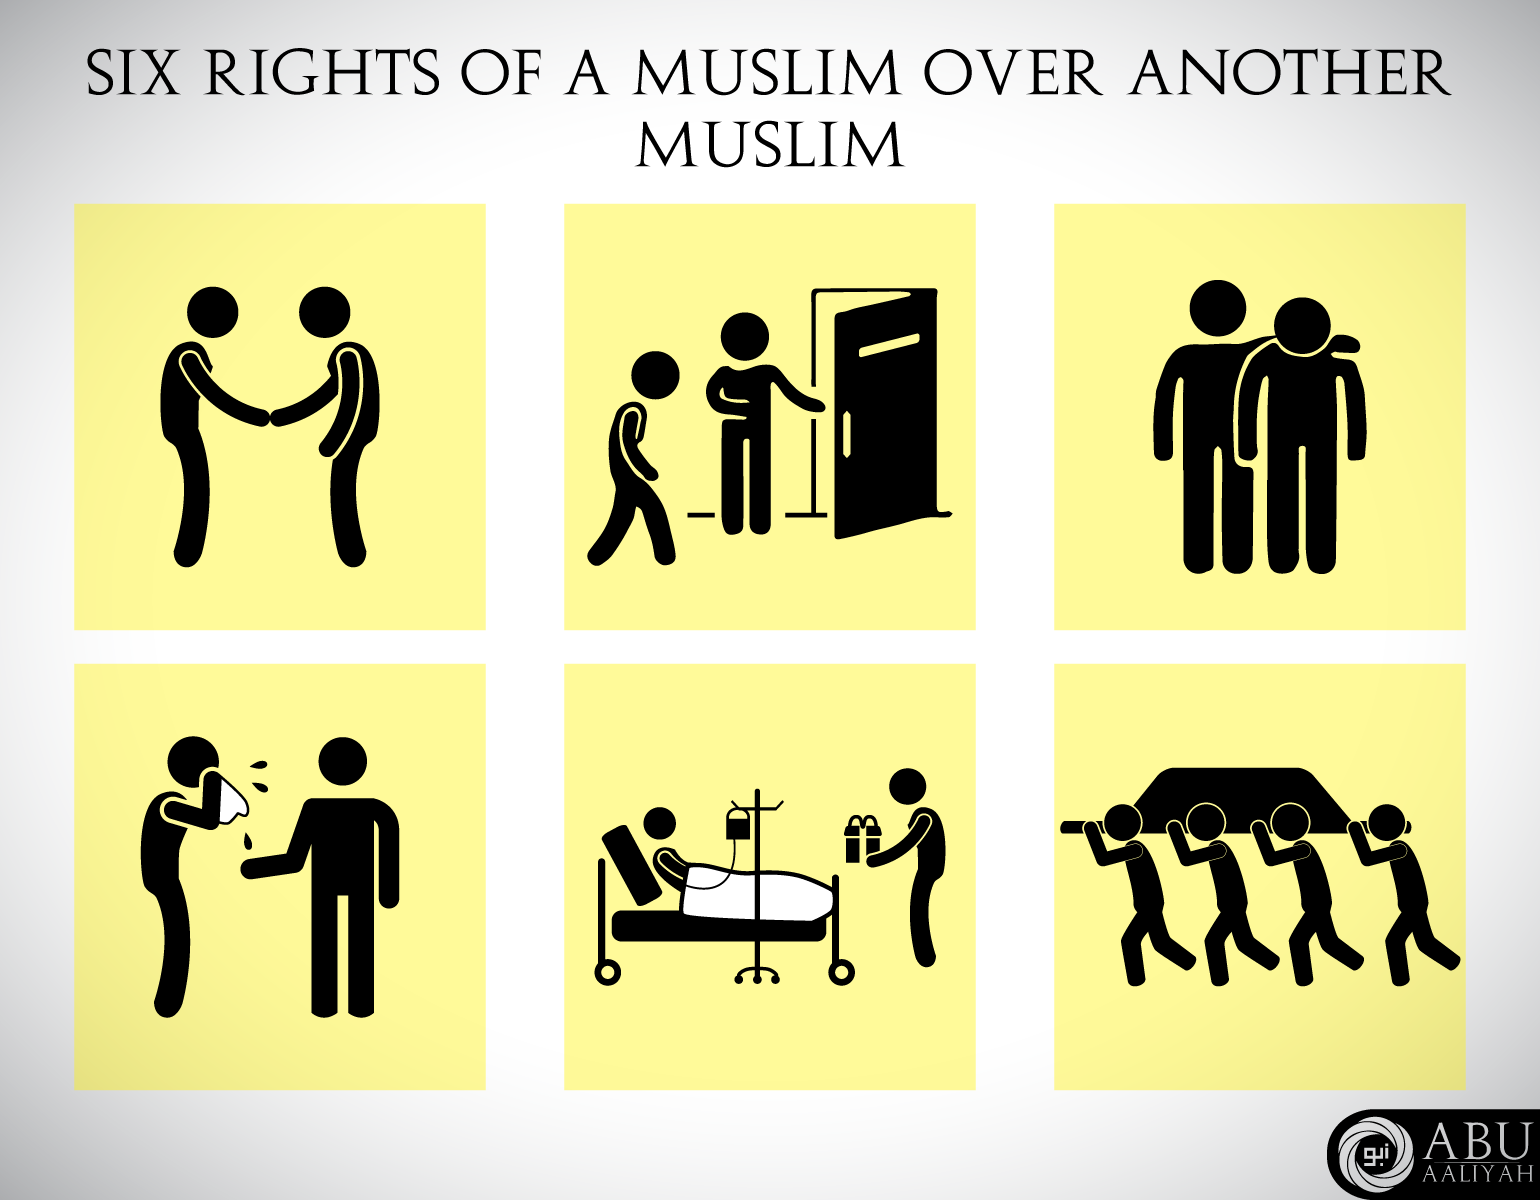 The Rights Of A Muslim Over Another Muslim The Abu Aaliyah Gazette